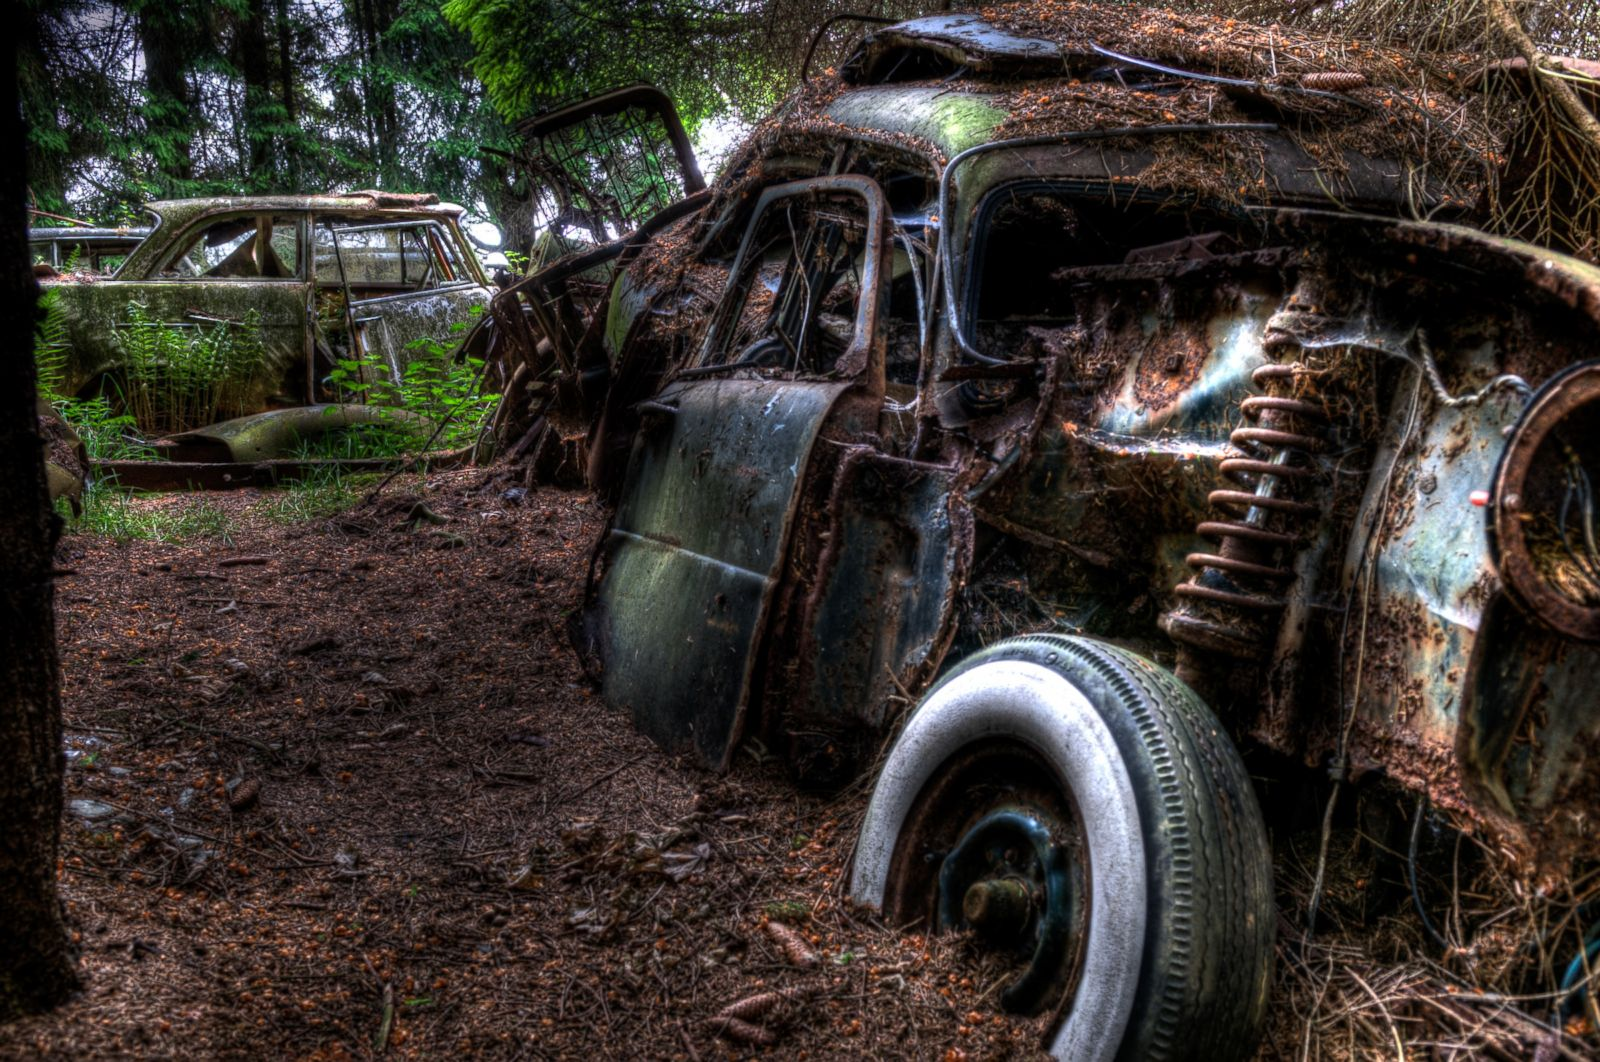 Forest Full of Abandoned Cars Photos | Image #14 - ABC News